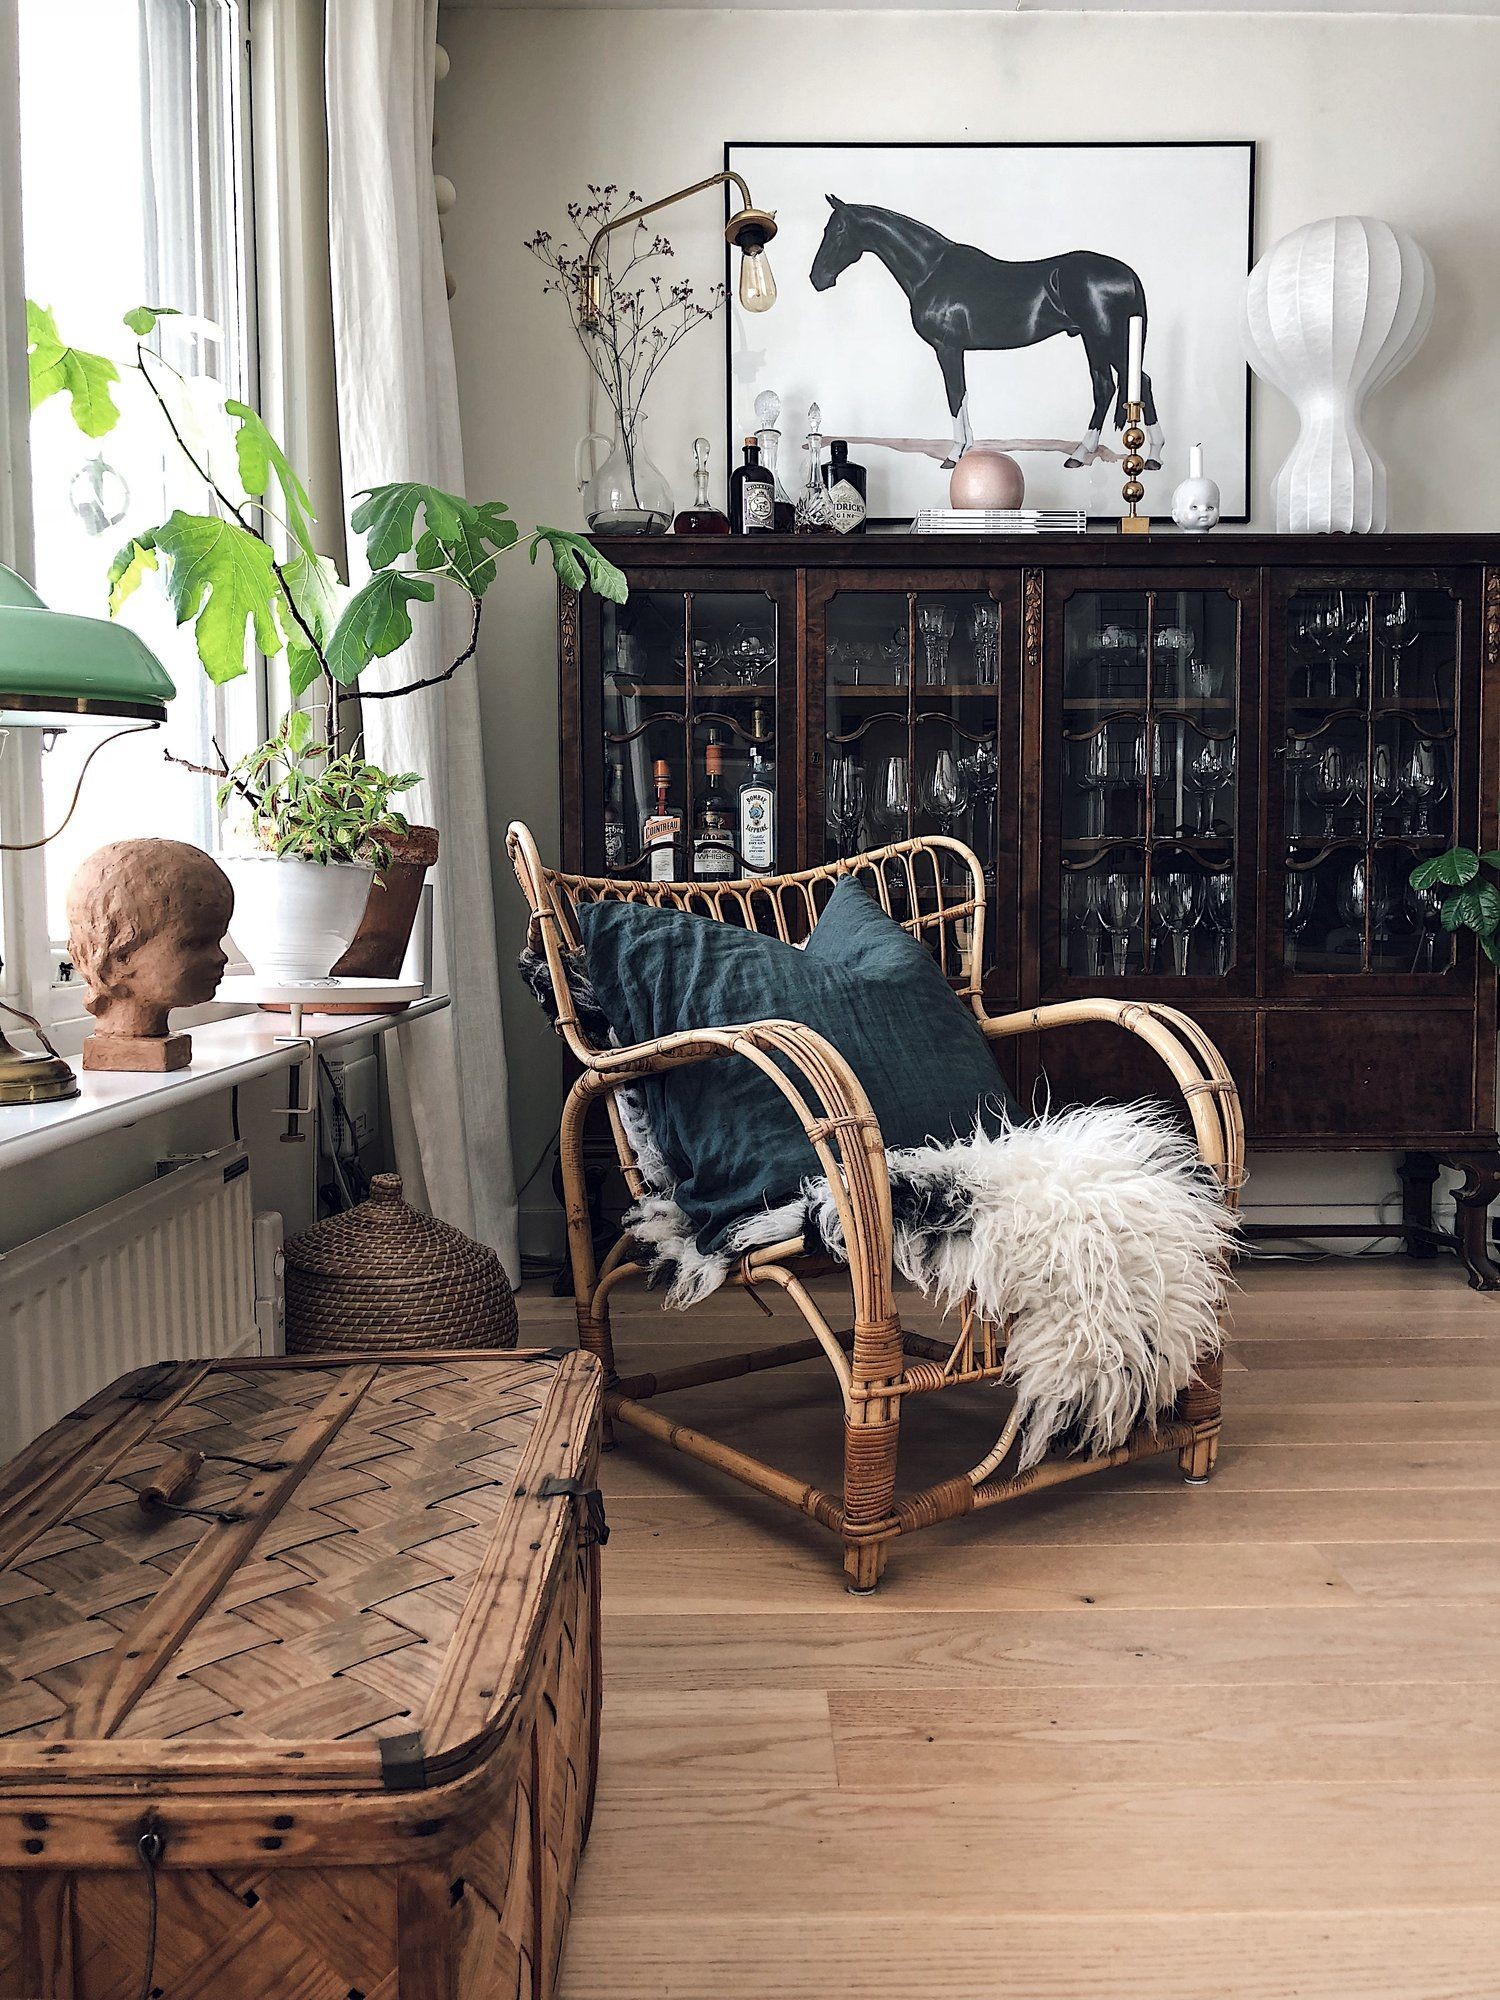 At Home With Camilla Larsson Nordique Nordic Lifestyle Scandinavian Design Nordic Products Scandinavian Travel Scandinavian Furniture Design Viking Decor Vintage Scandinavian Furniture